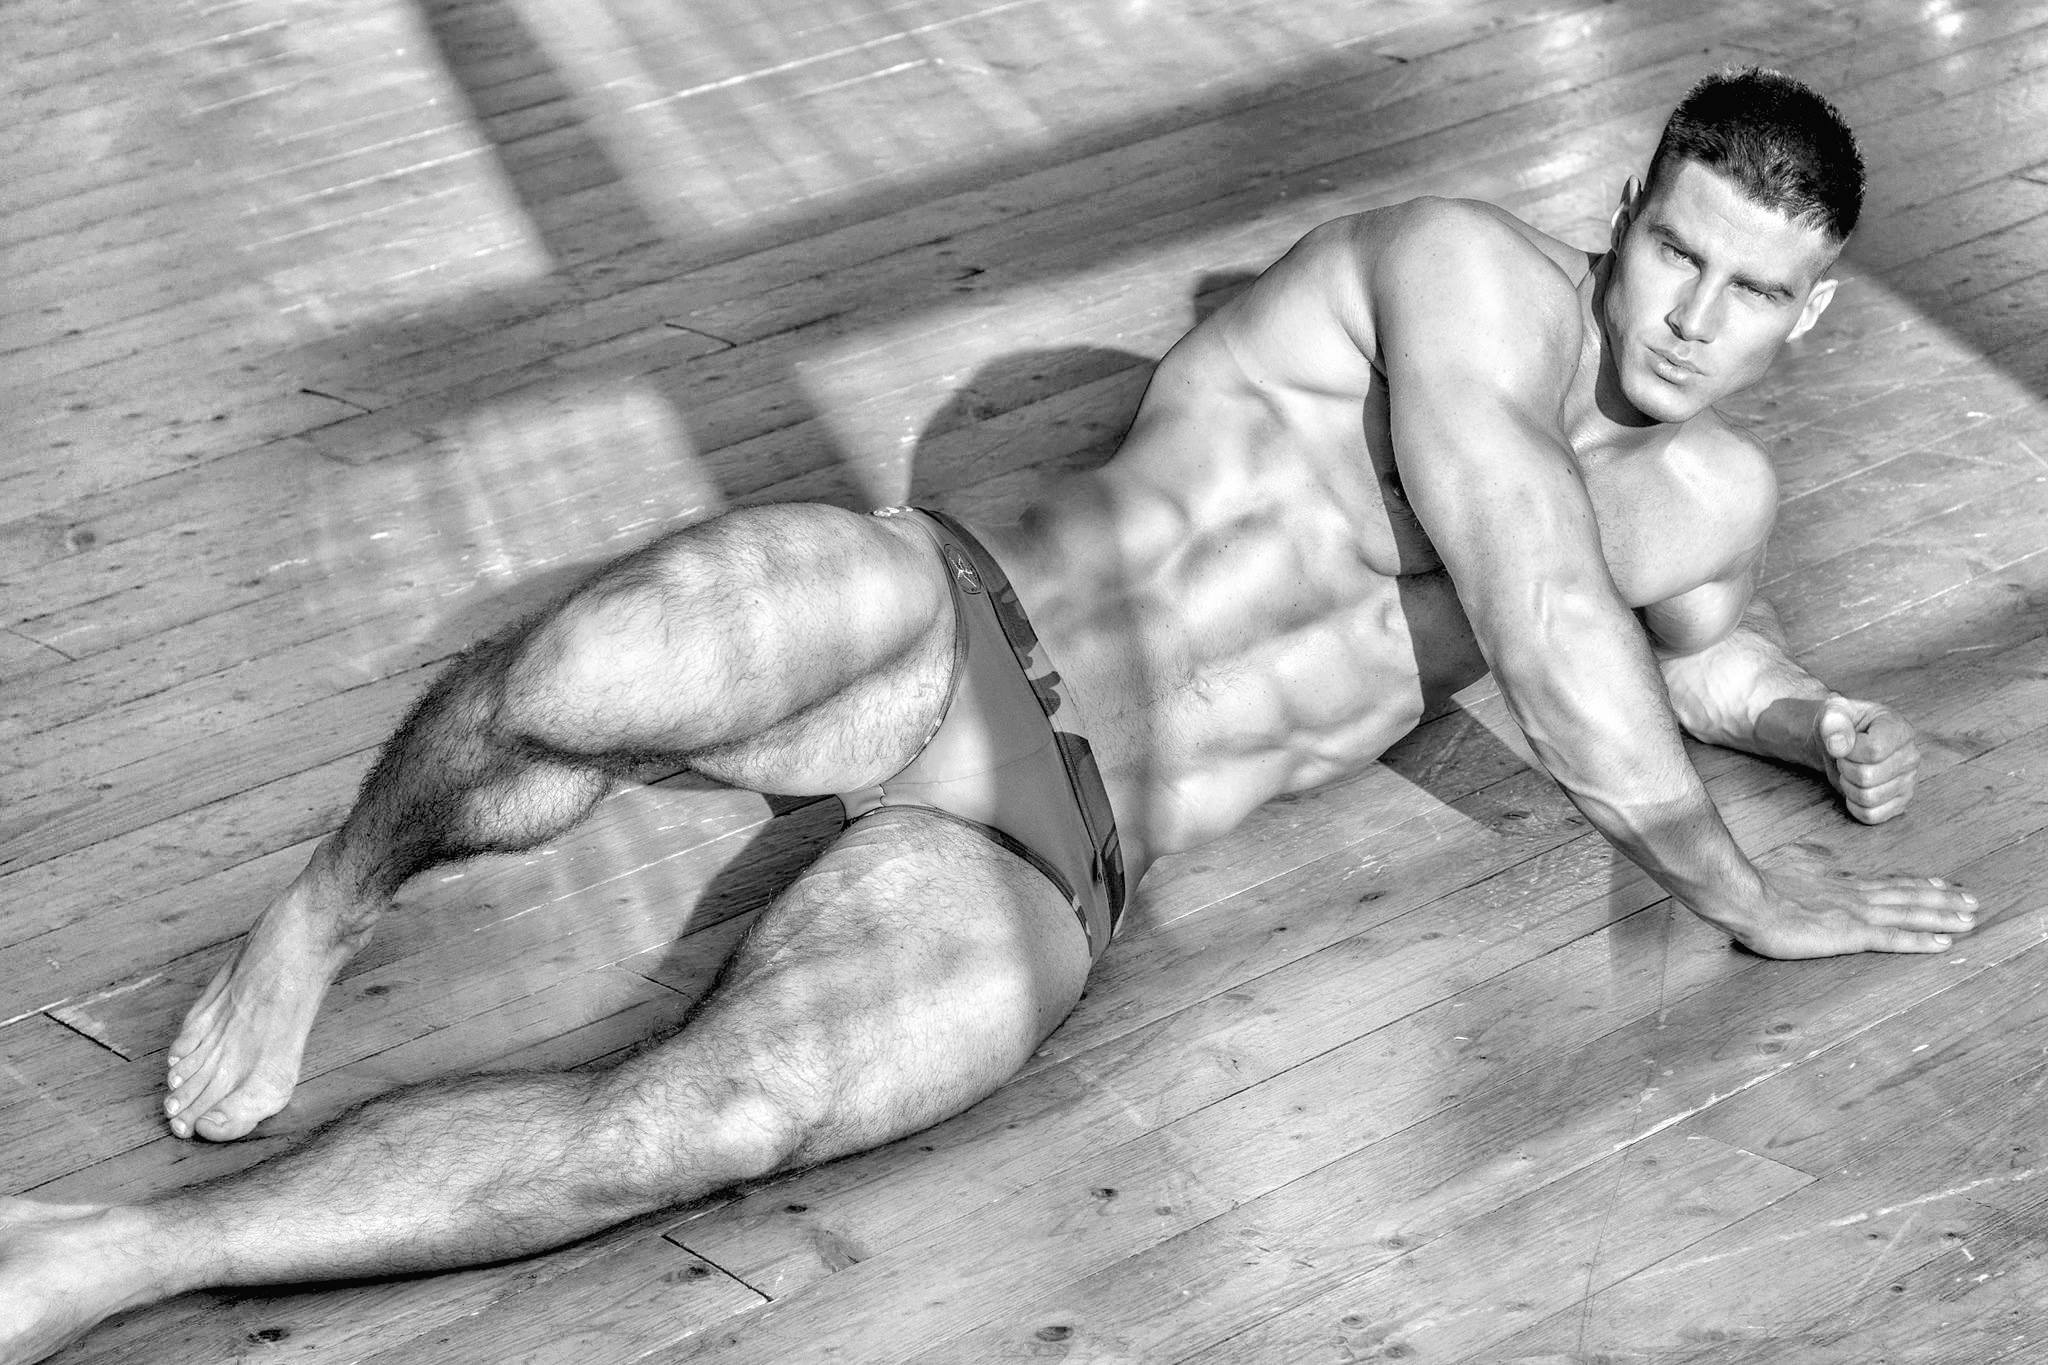 Dmitry Averyanov by Sasha Kosmos